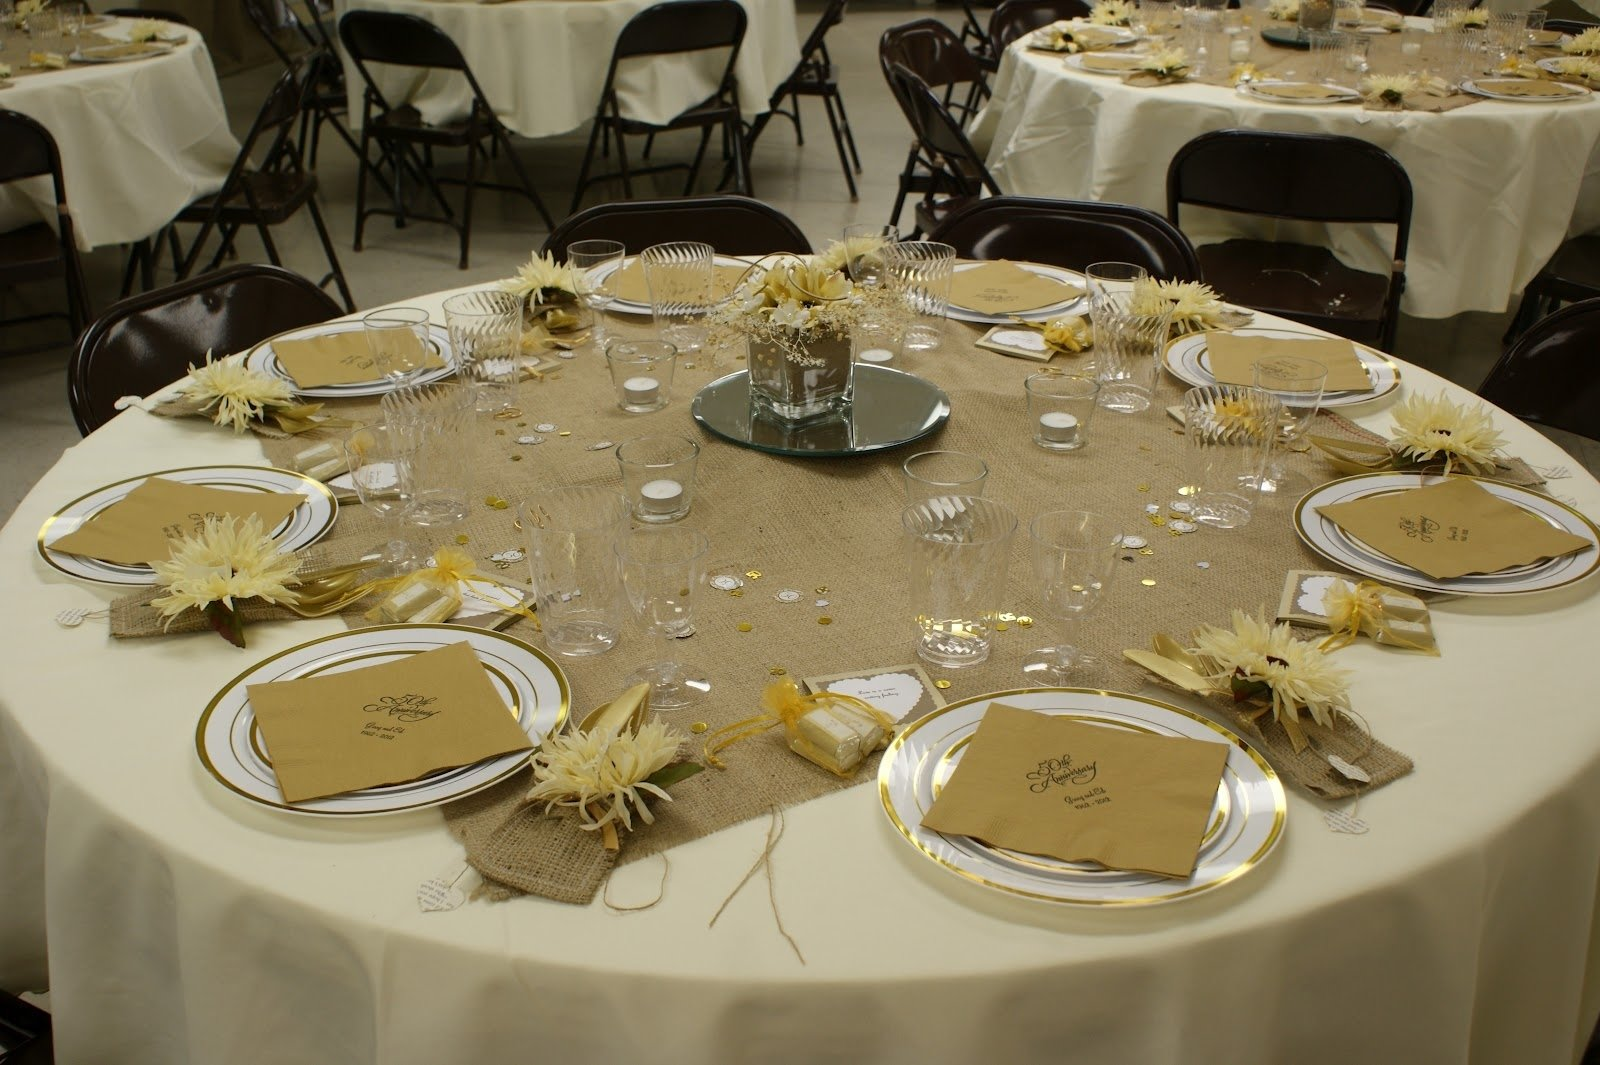 10 Best 50 Year Anniversary Party Ideas karenscraps 50th anniversary party decorations 2021